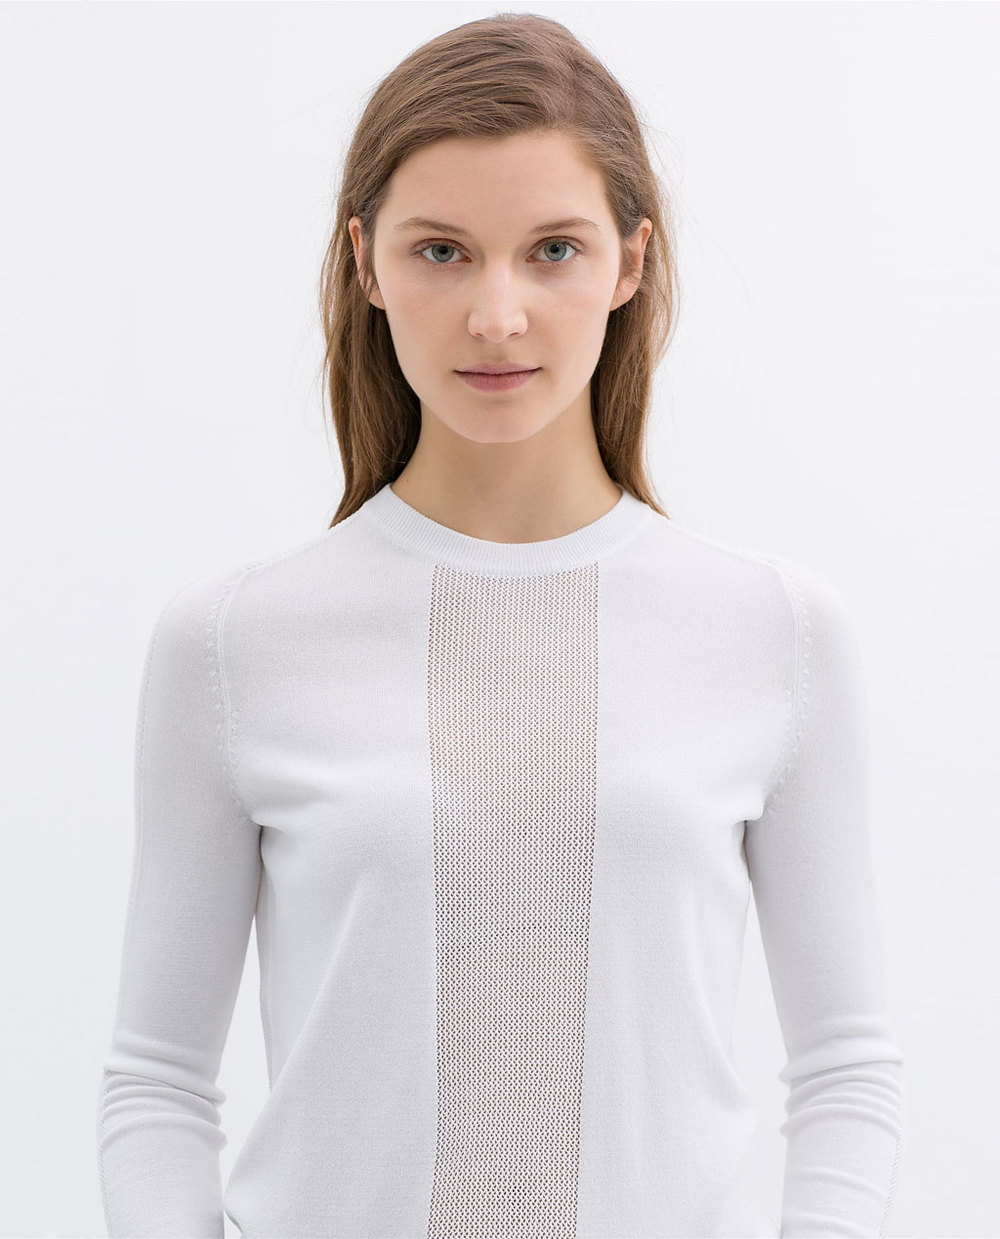 Sweater with open work detail. Available in white or dusty pink. Zara. $49.90.